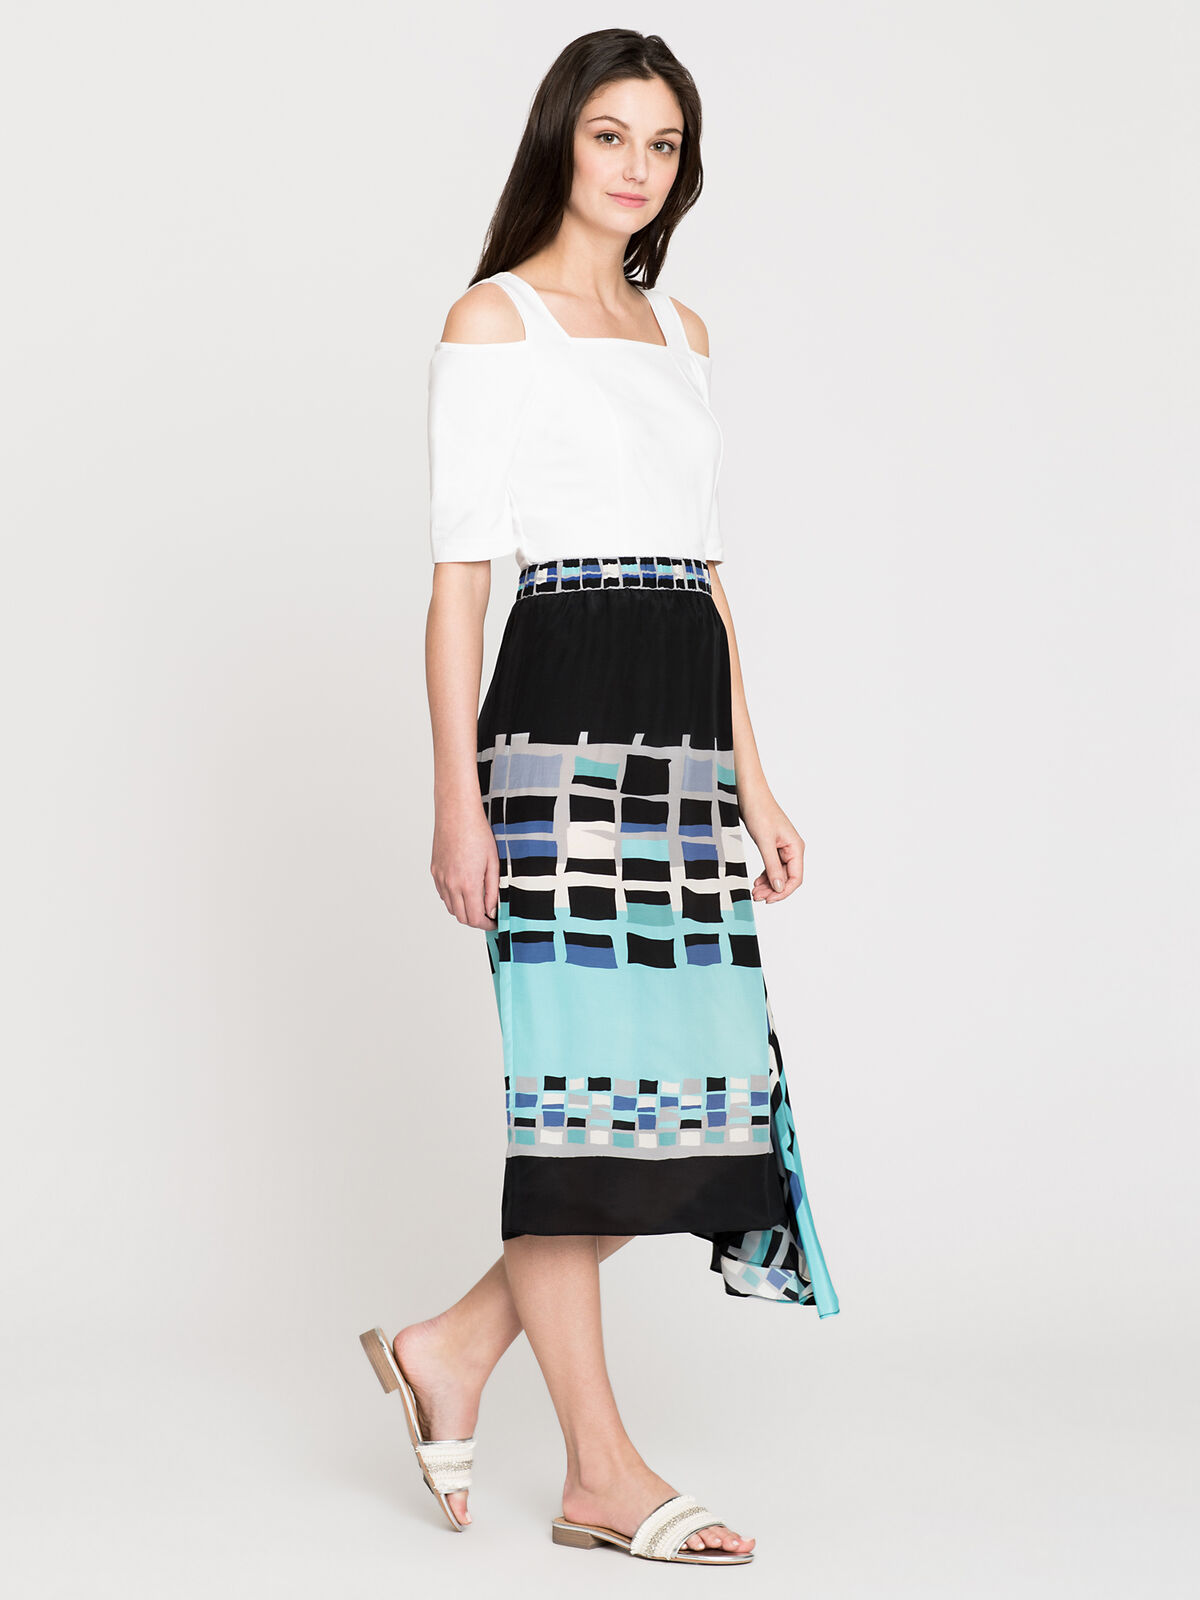 From Above Skirt